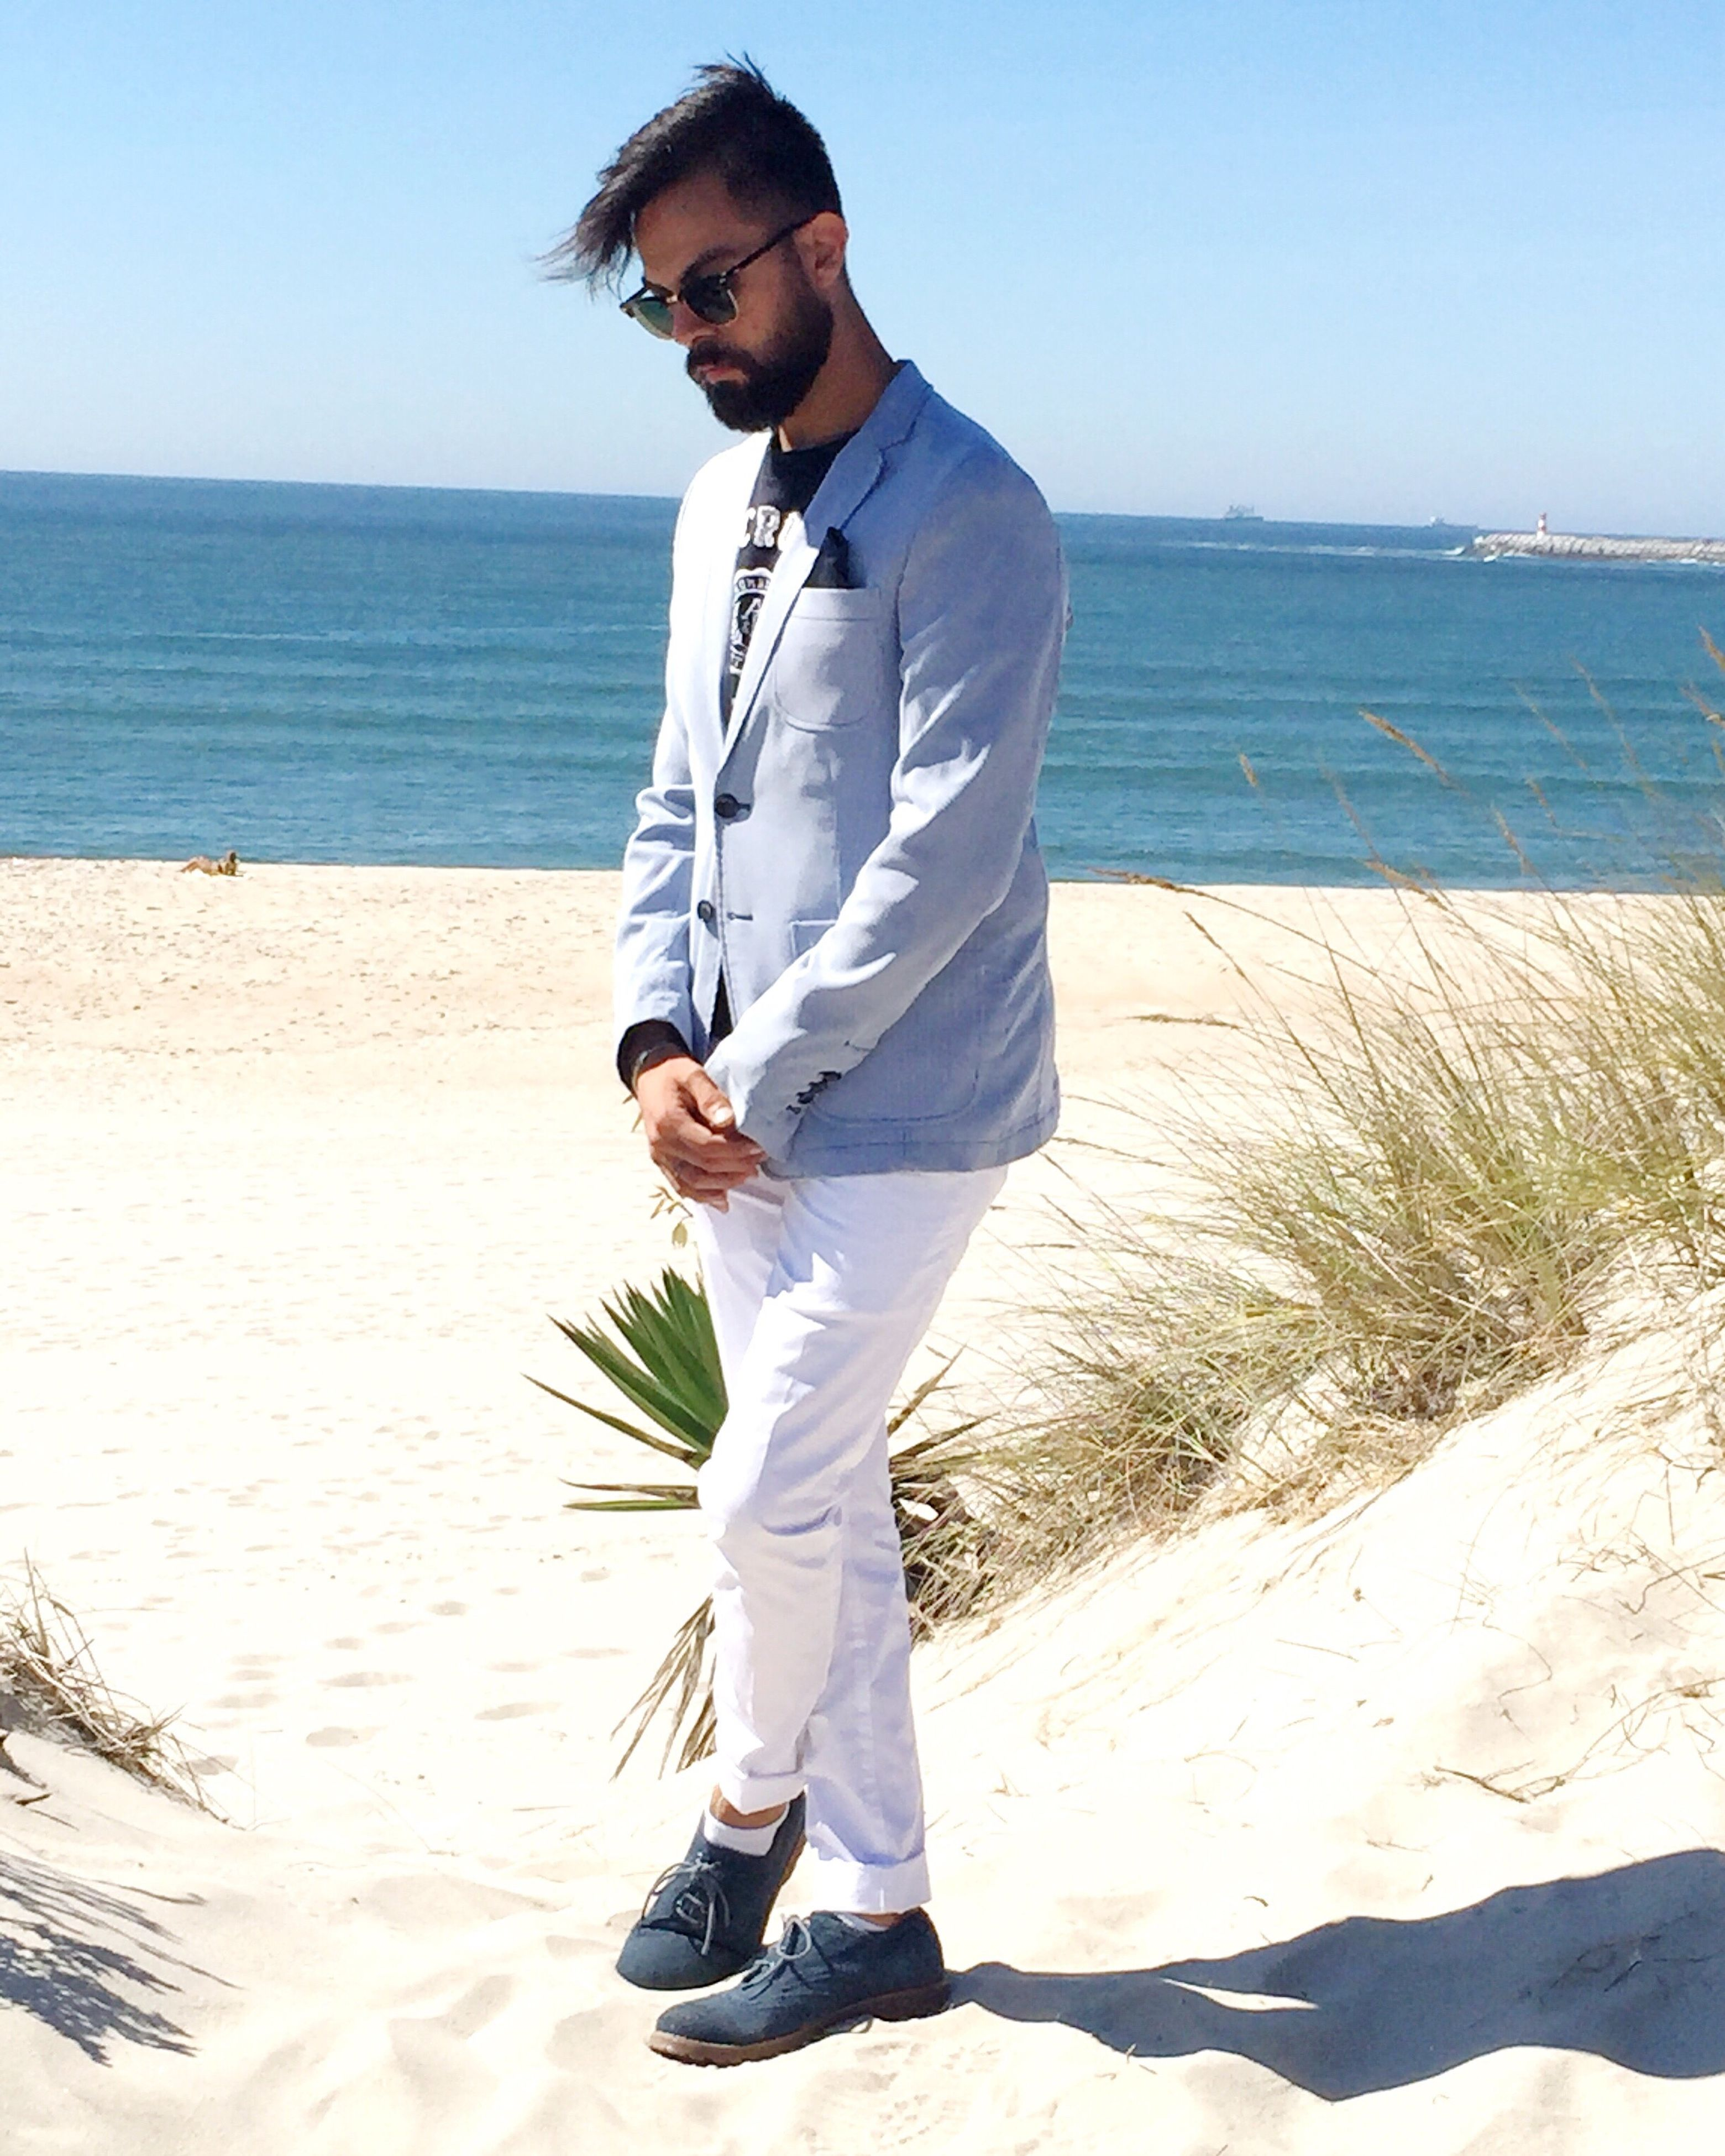 young adult, sand, full length, sunlight, beach, young men, shadow, sunglasses, casual clothing, sunny, water, person, clear sky, confidence, sea, outdoors, tranquil scene, tranquility, nature, beauty in nature, shore, day, scenics, sandy